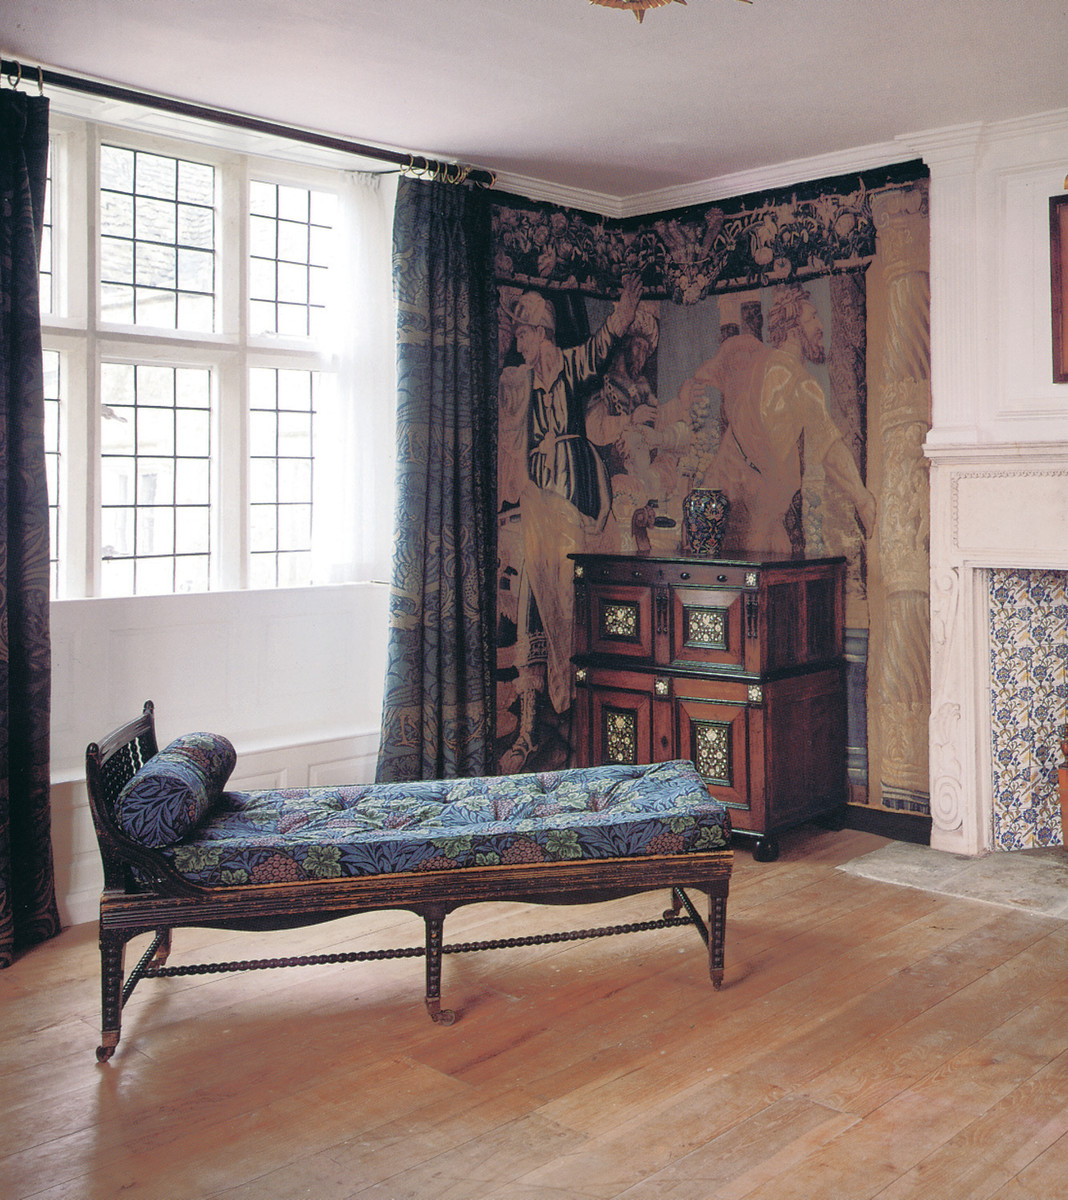 Furniture_Kelmscott_Manor_British_Arts_Crafts